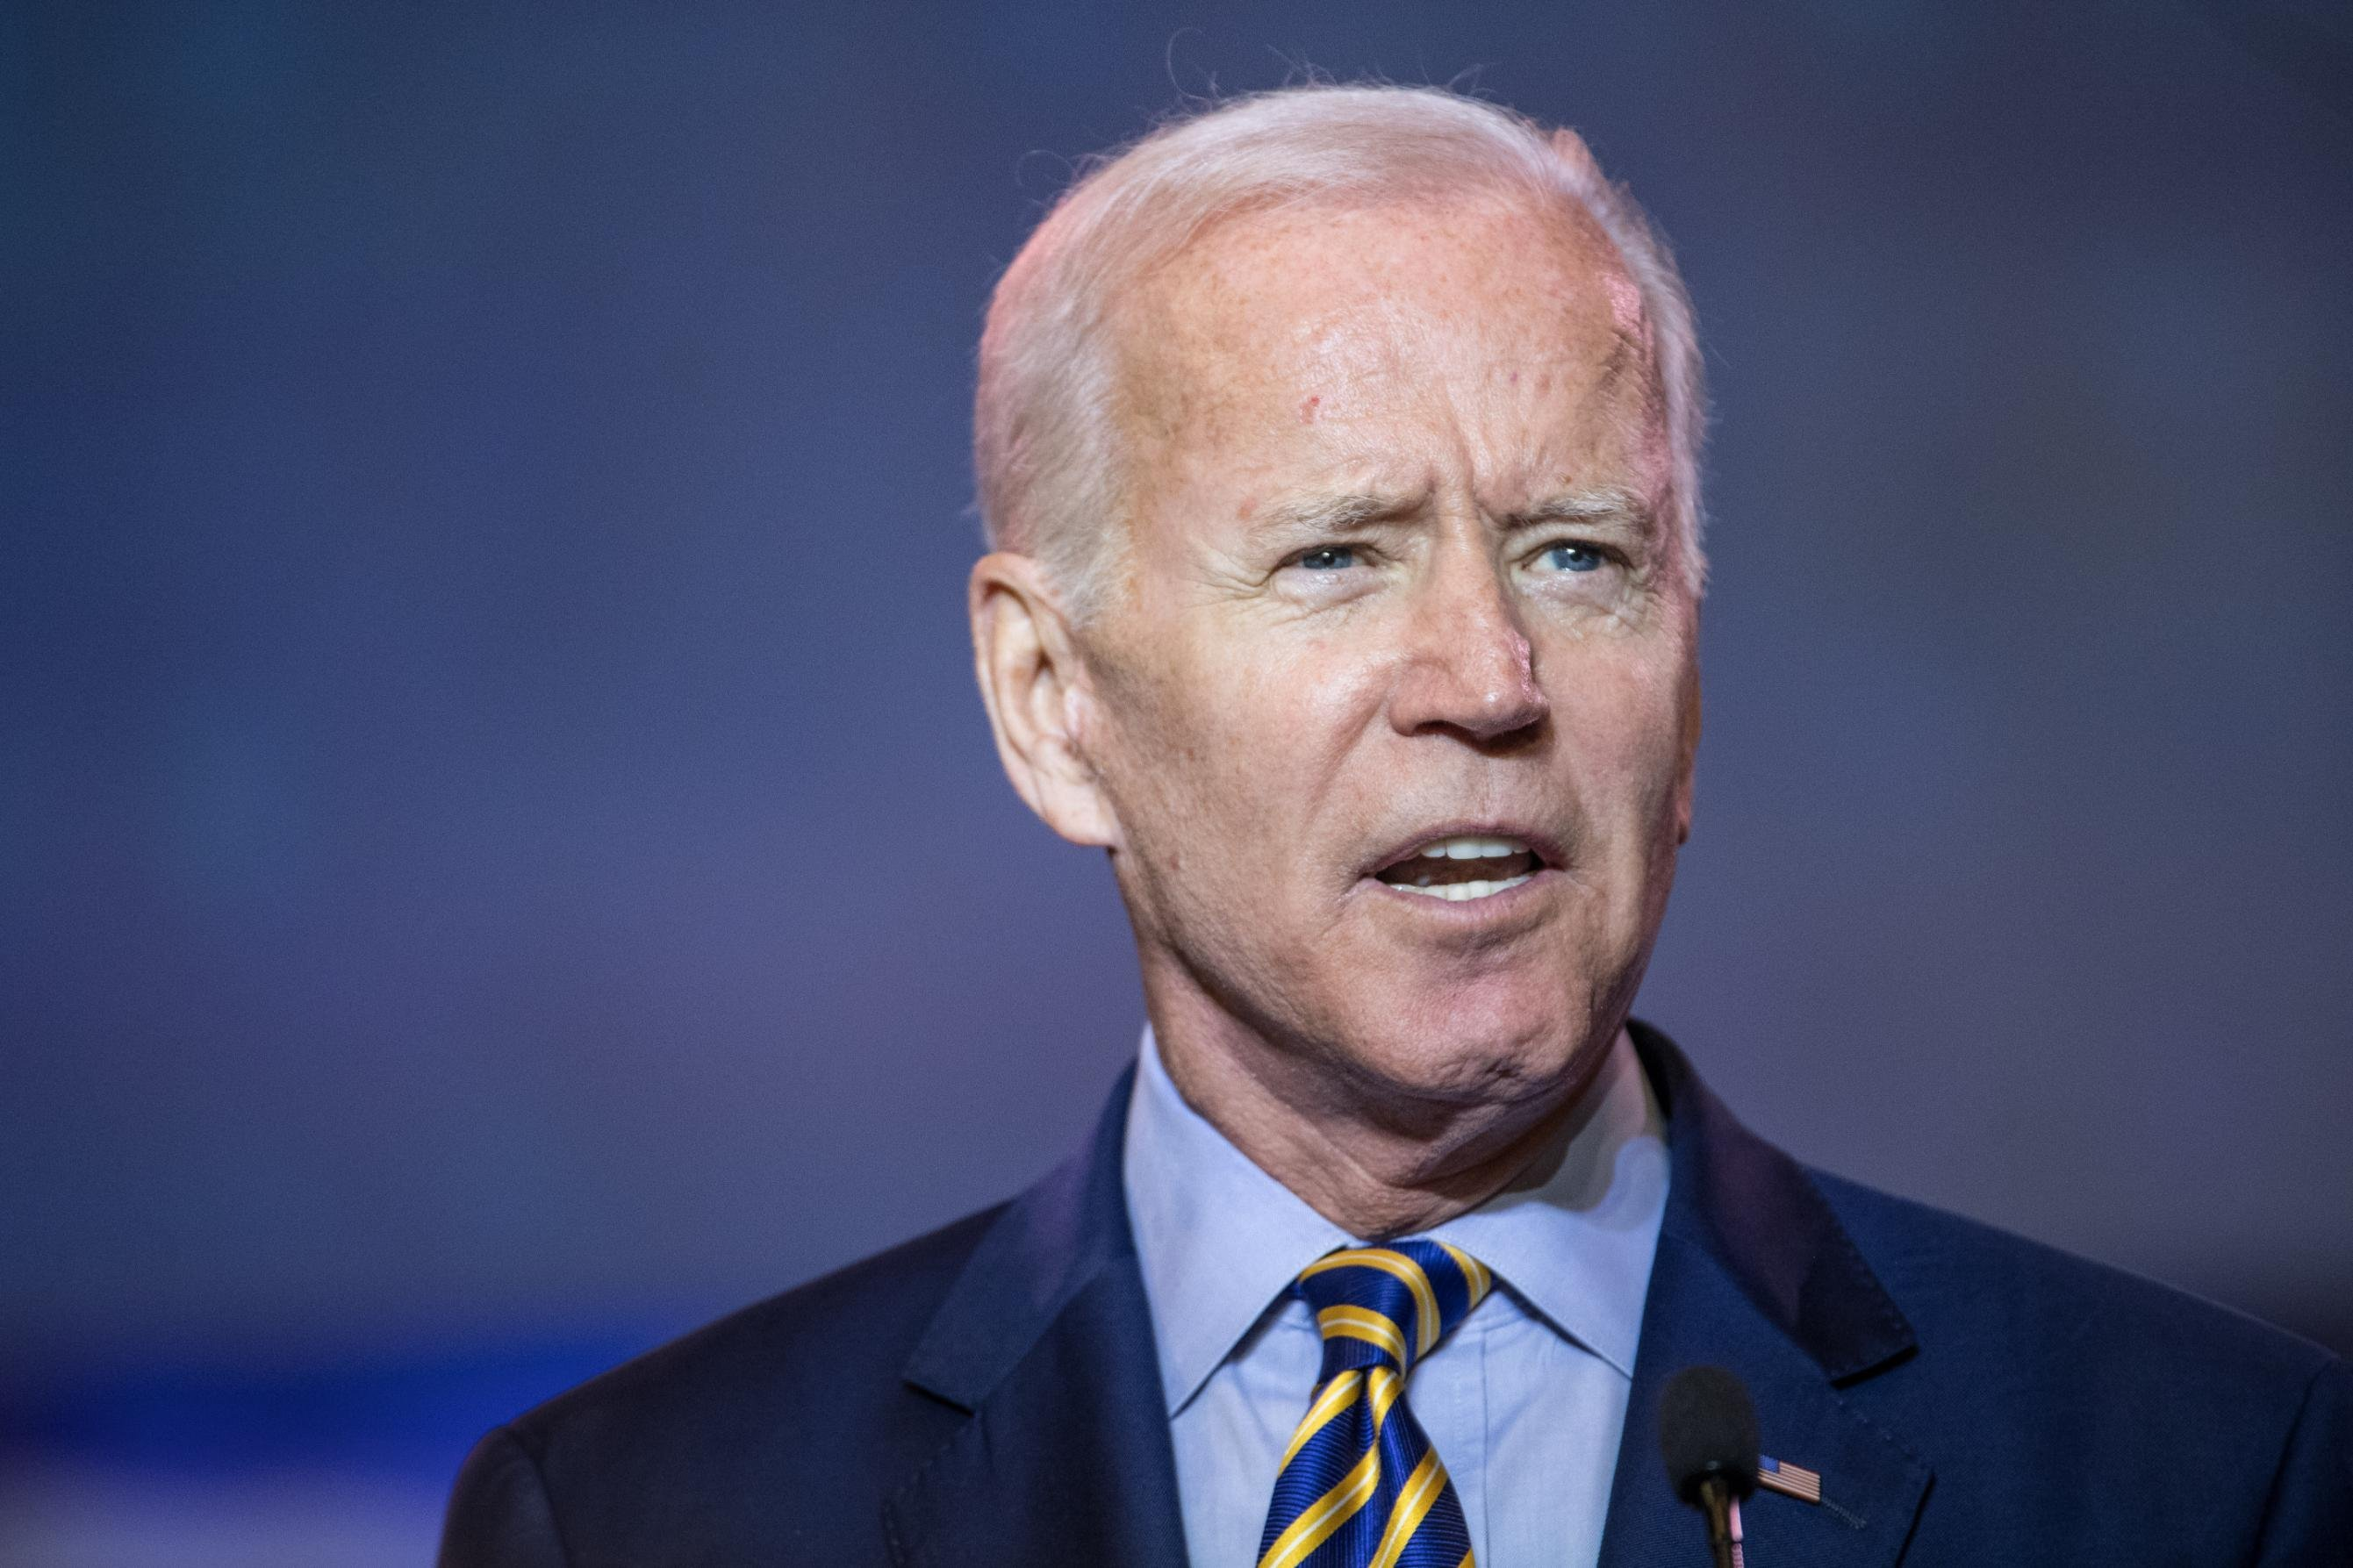 New polls show Biden leading in South Carolina